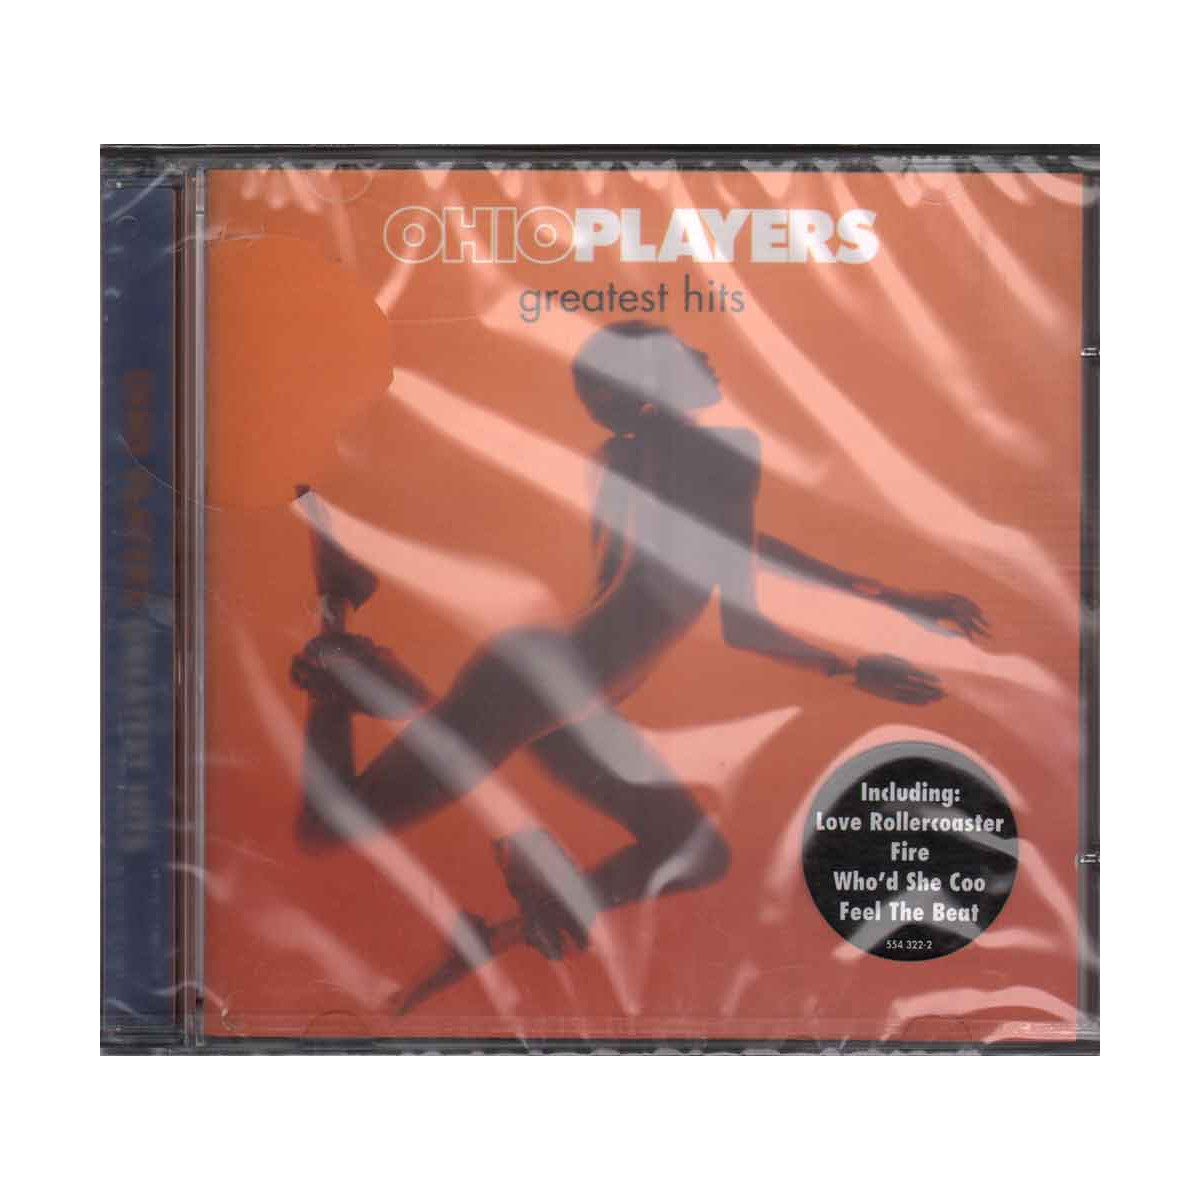 Ohio Players CD Greatest Hits Nuovo Sigillato 0731455432220